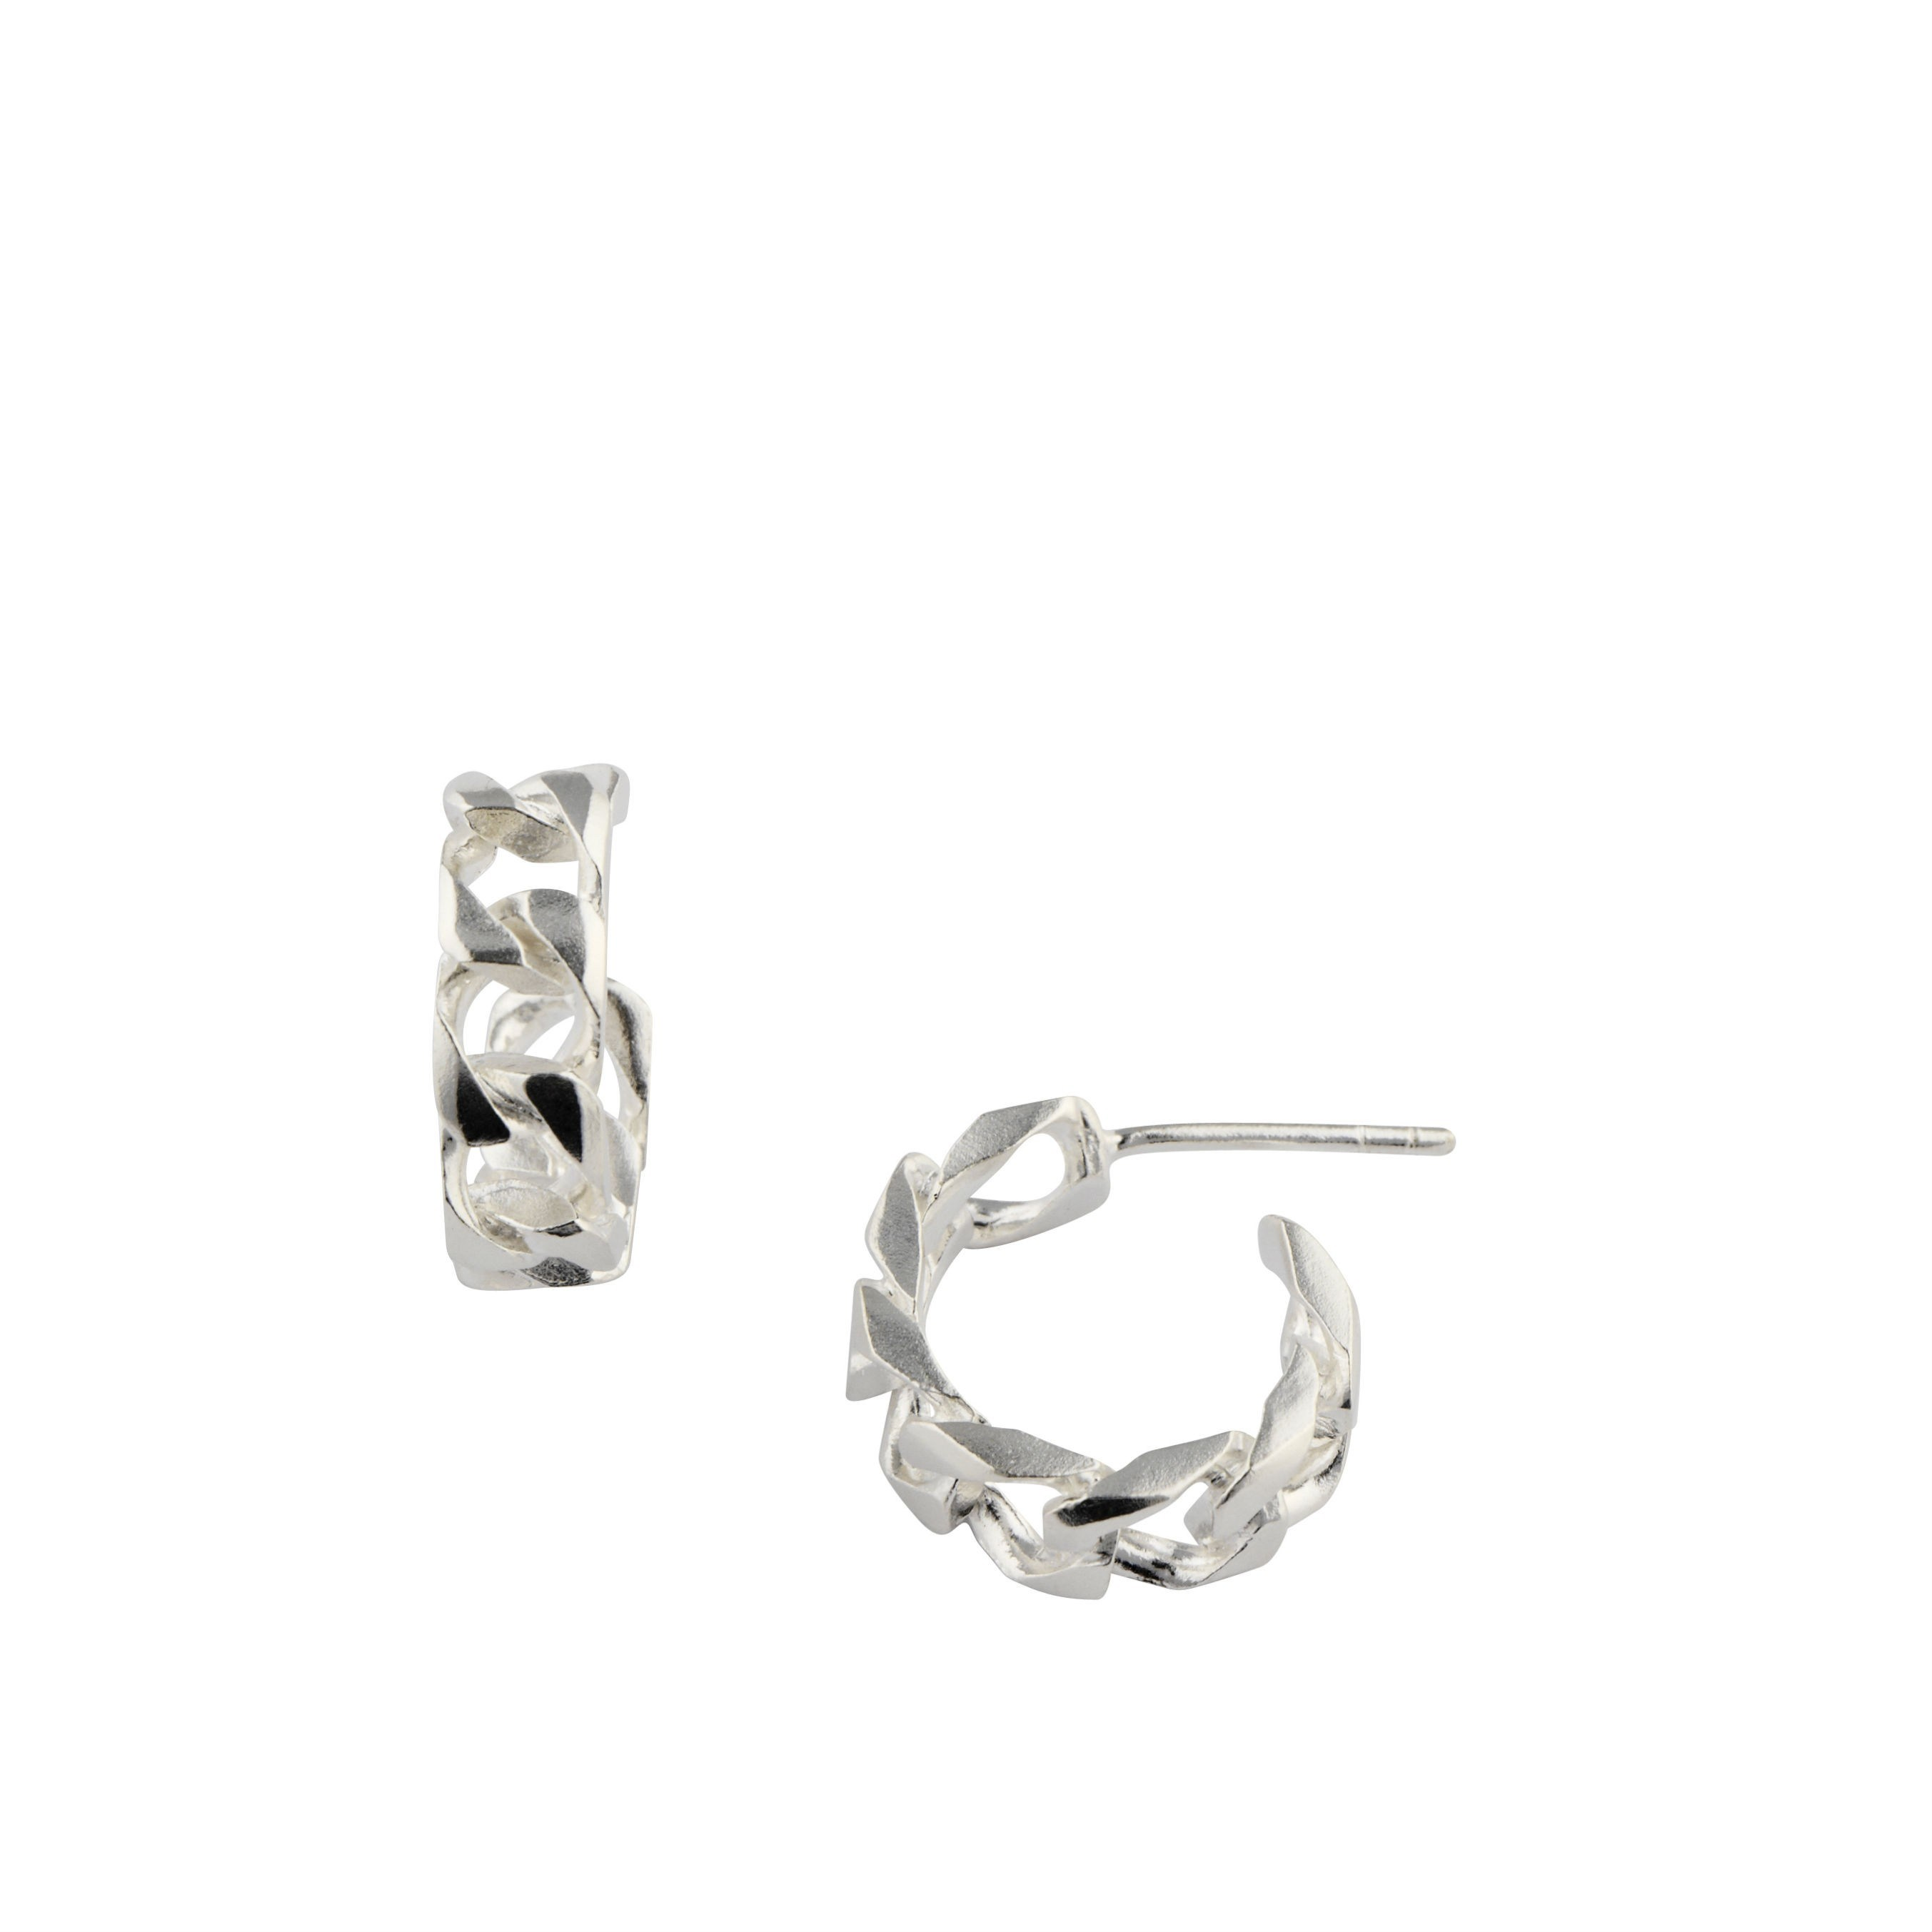 https://www.selecteddesigners.dk/media/catalog/product/r/i/riley_earring_white-rhodium.jpg